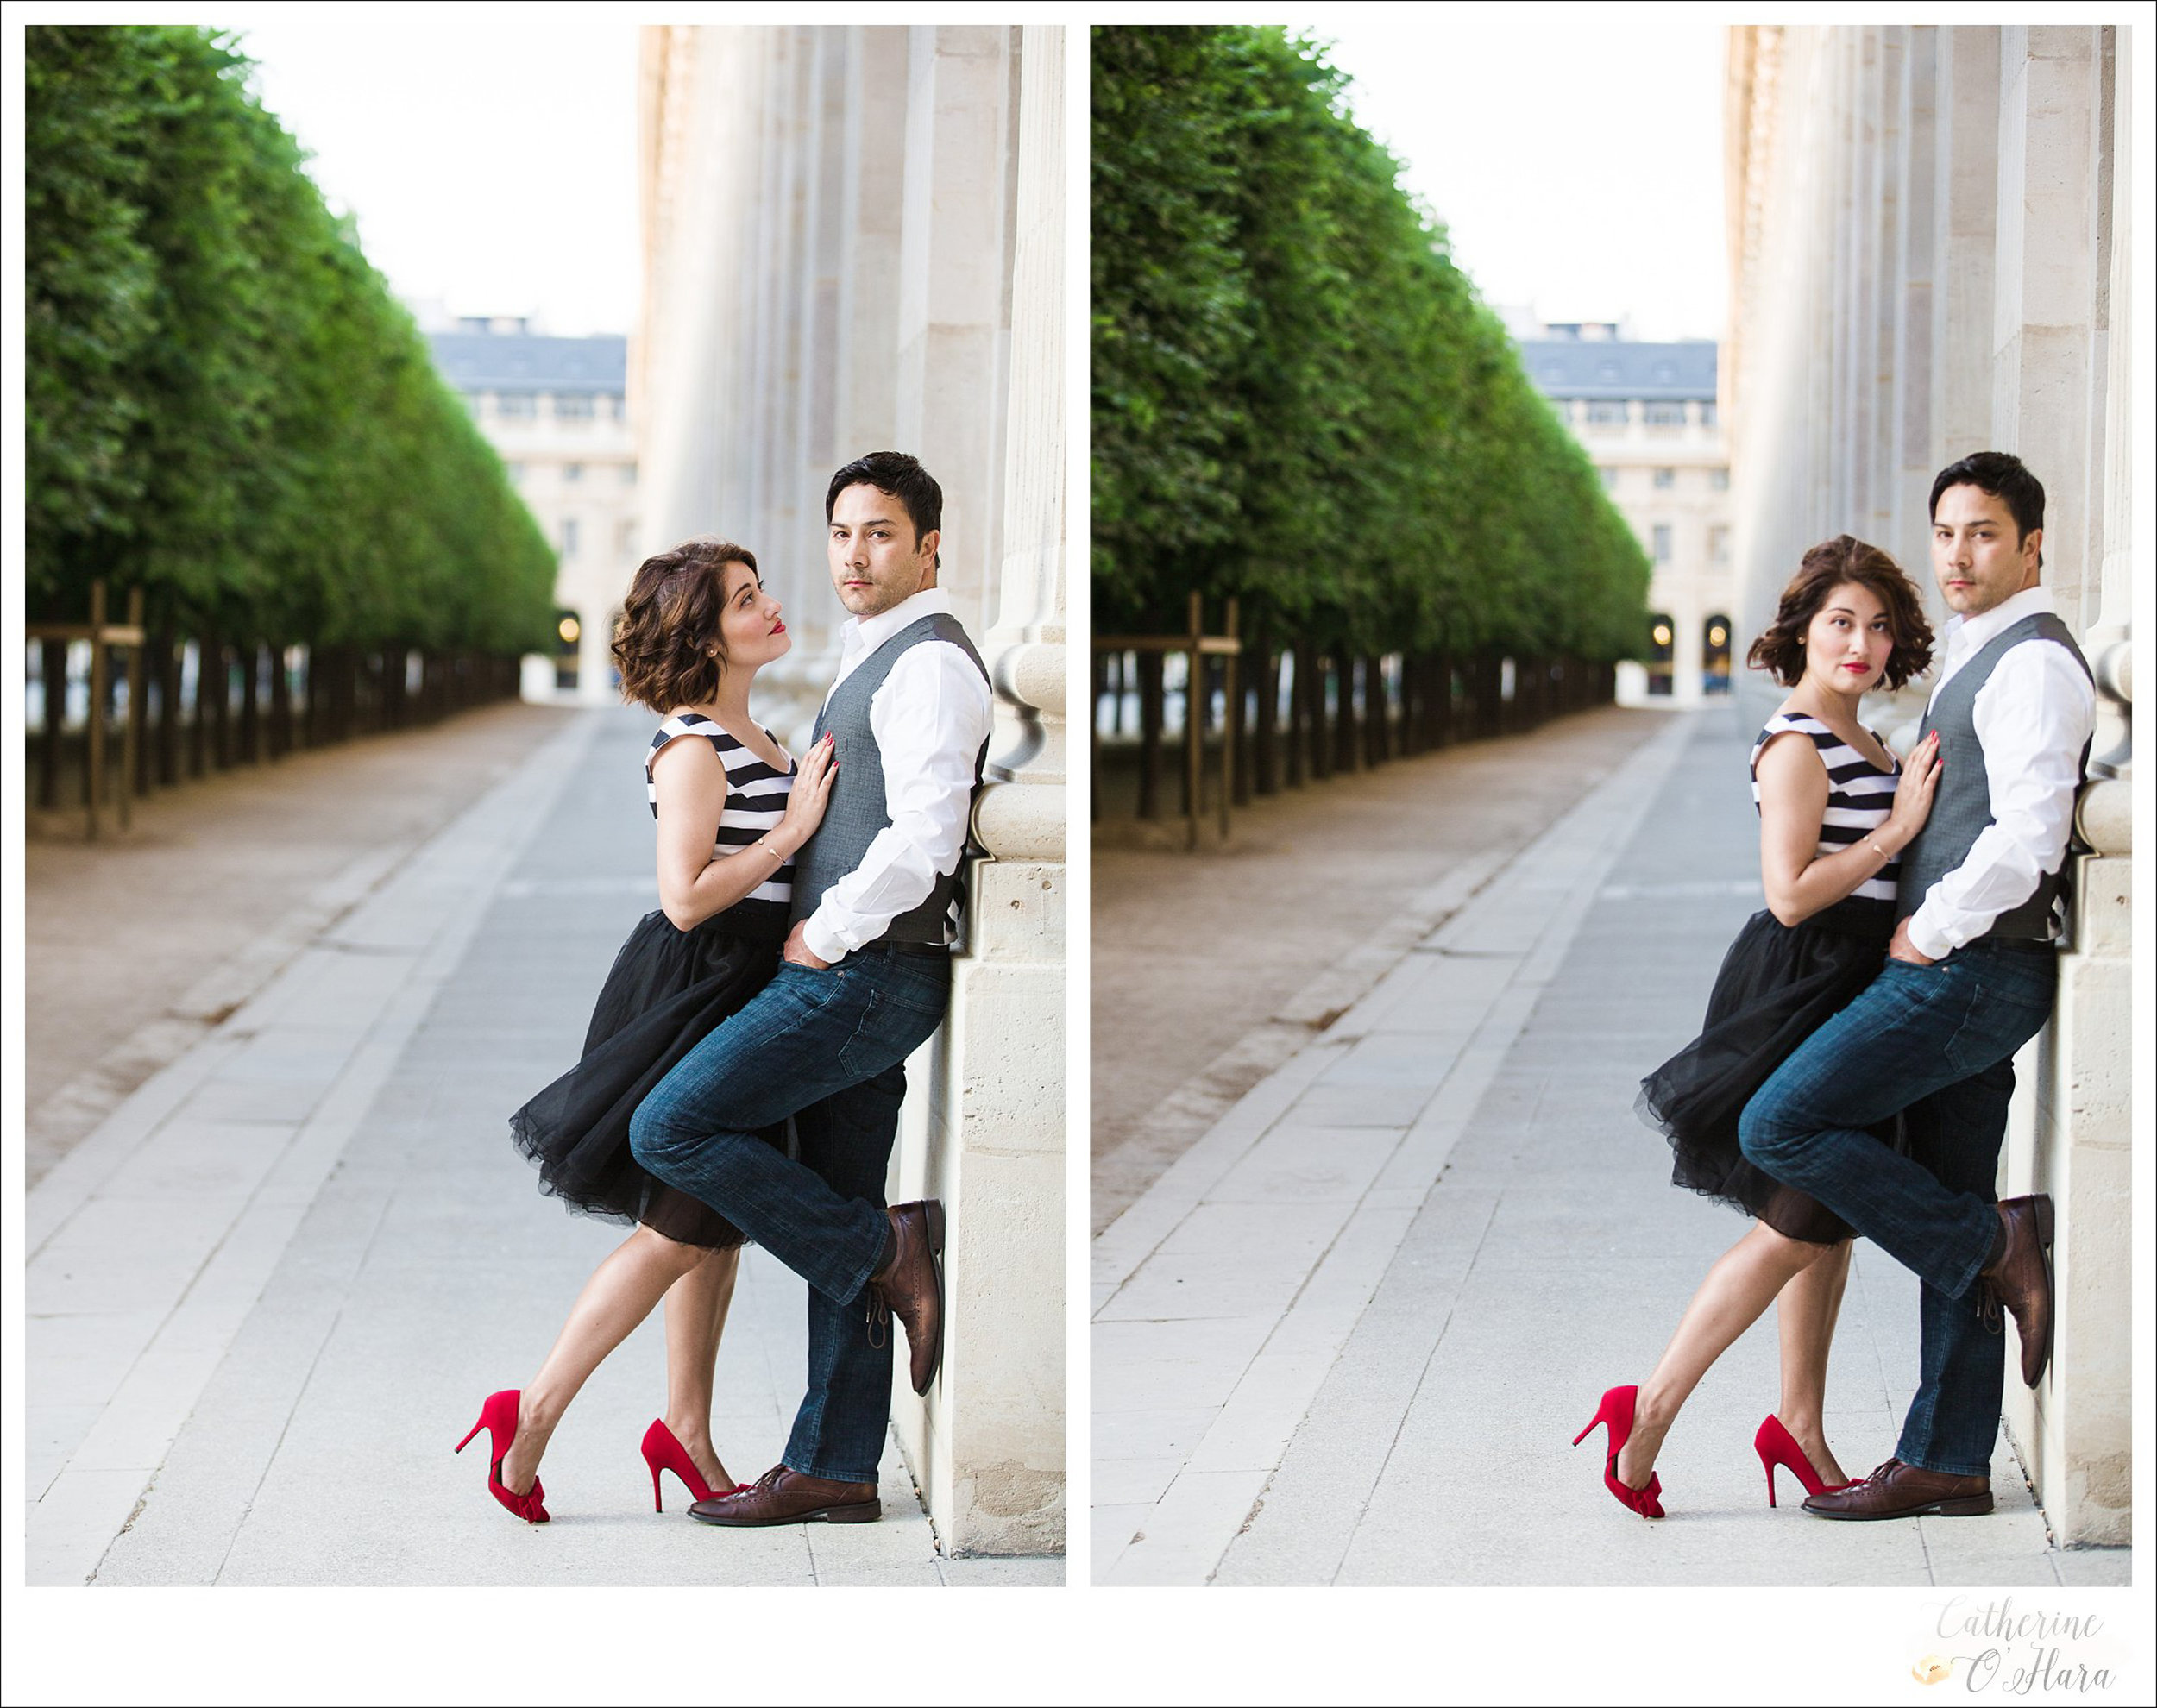 18-paris-engagement-photographer-france.jpg